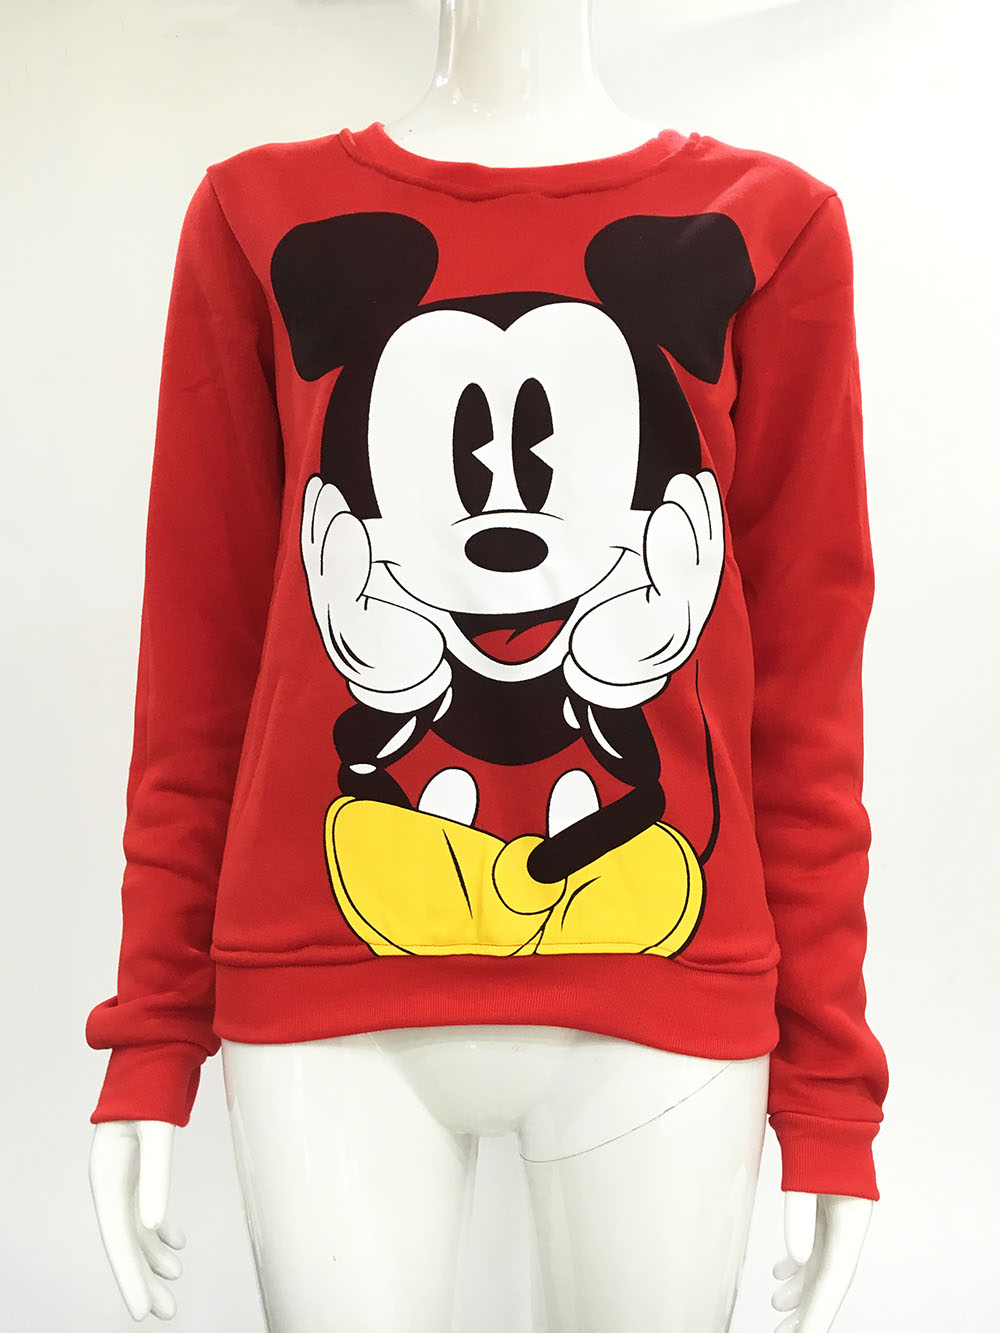 Ženska odeća ... Duksevi ... 32794724519 ... 4 ... 2016 Fashion New European Mickey printing Sweatshirt Hoodies Long Sleeve  loose women Crewneck  size S-XL Hot sale 2016 ...